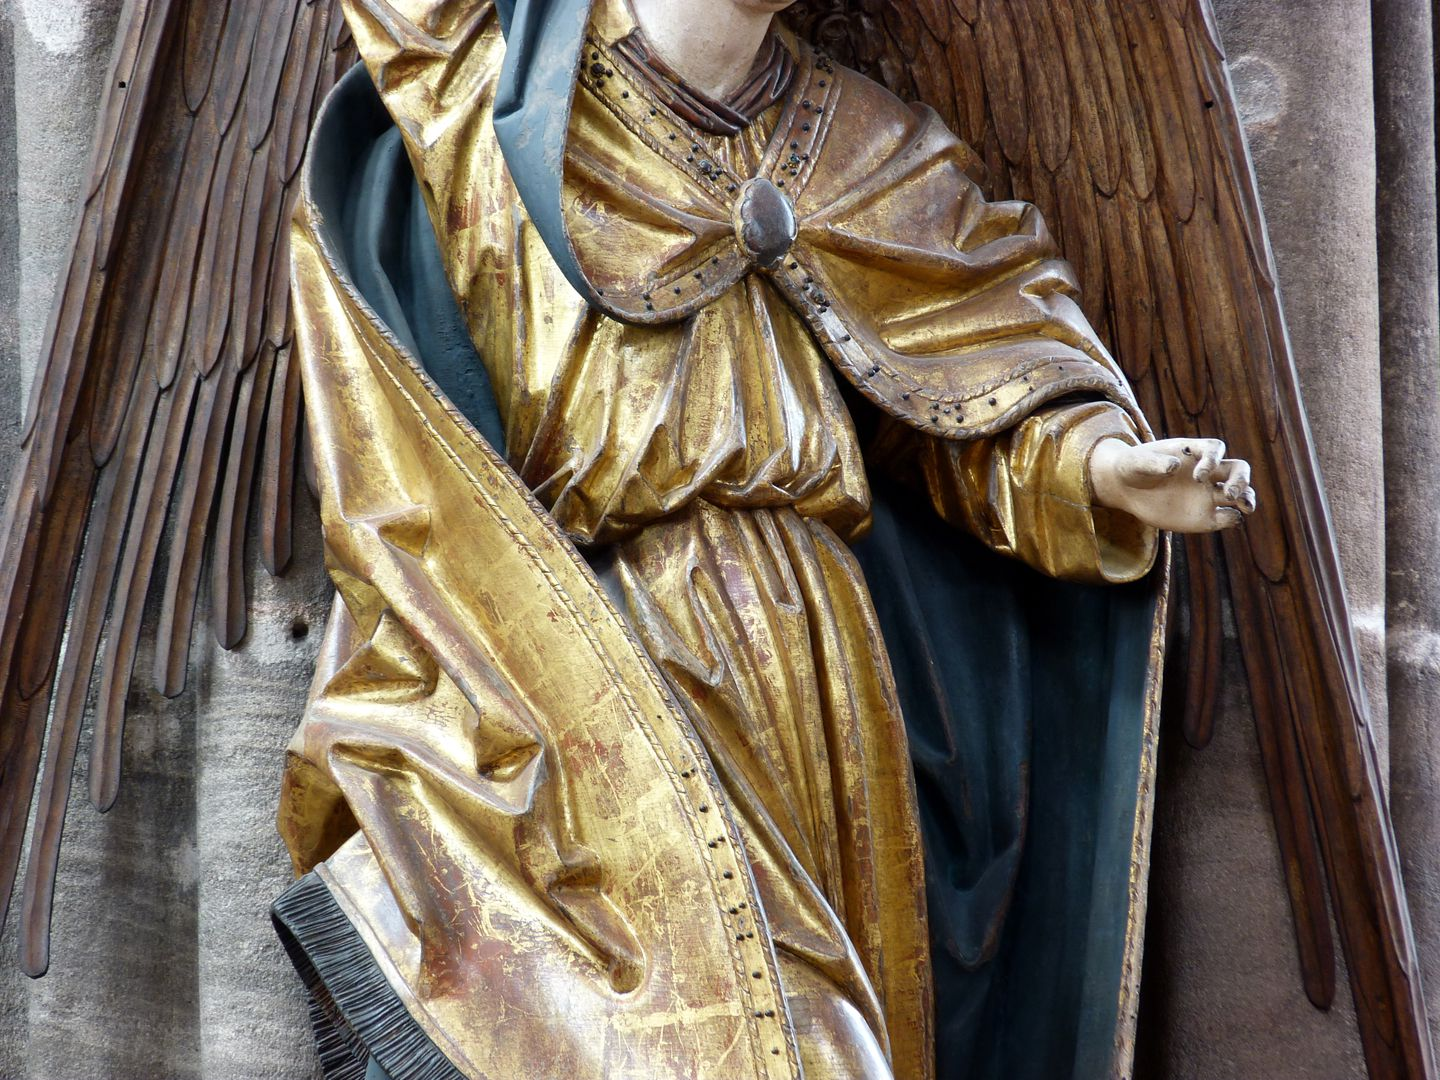 Archangel Michael Central part, detail: The left hand was carrying a weighing scale that was lost